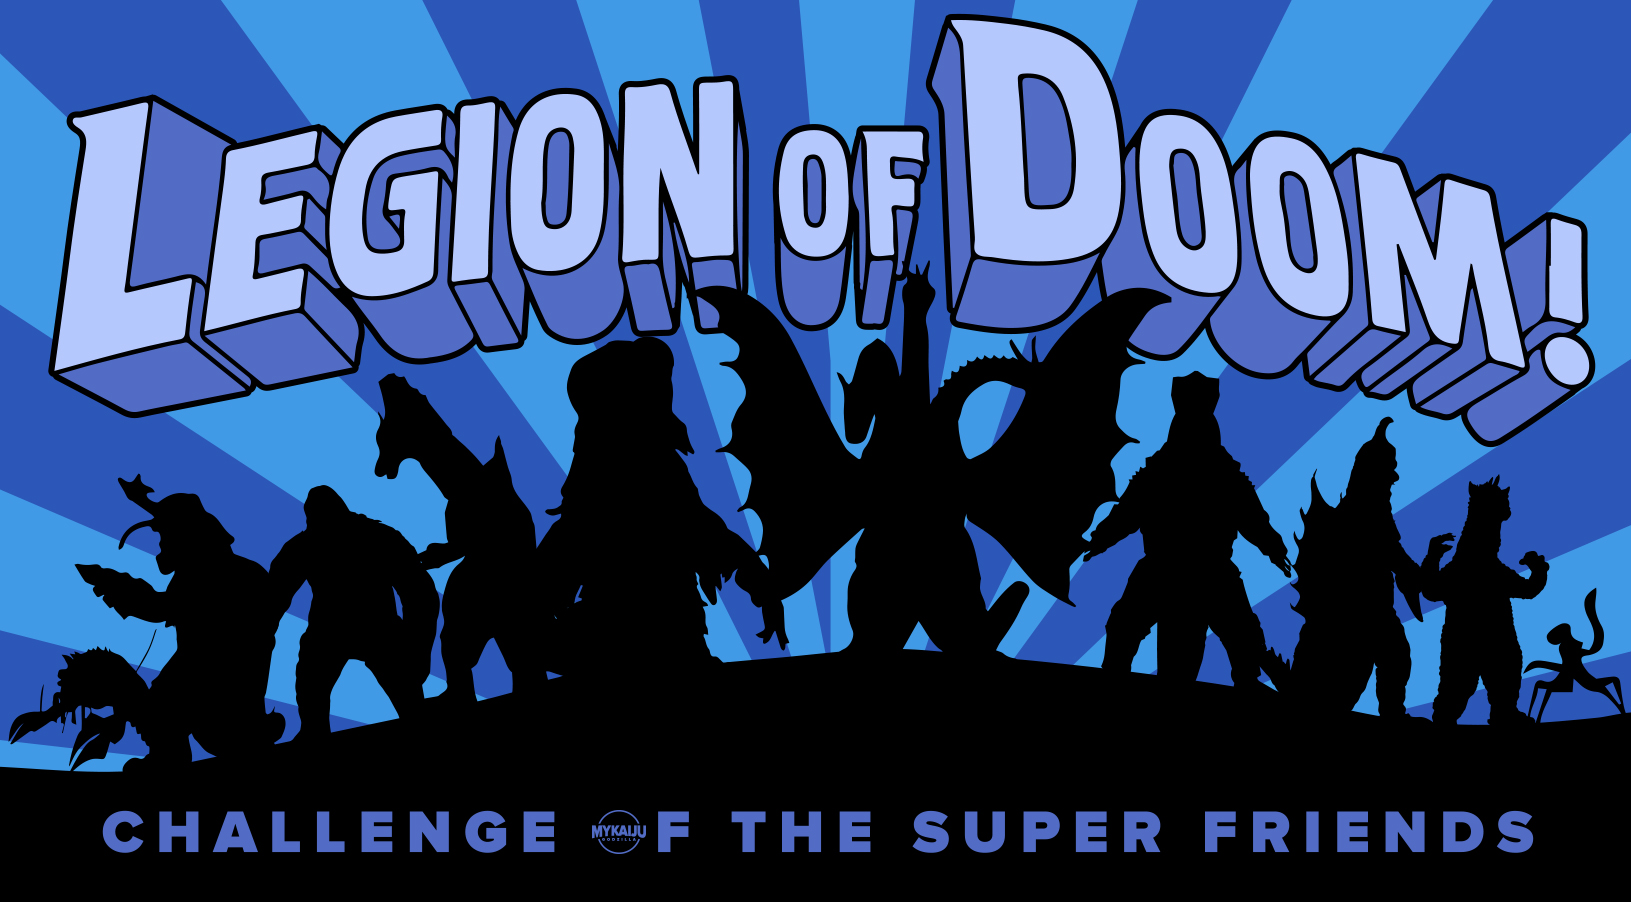 Godzilla's Enemies form the Legion of Doom that are the Challenge of the Super Friends